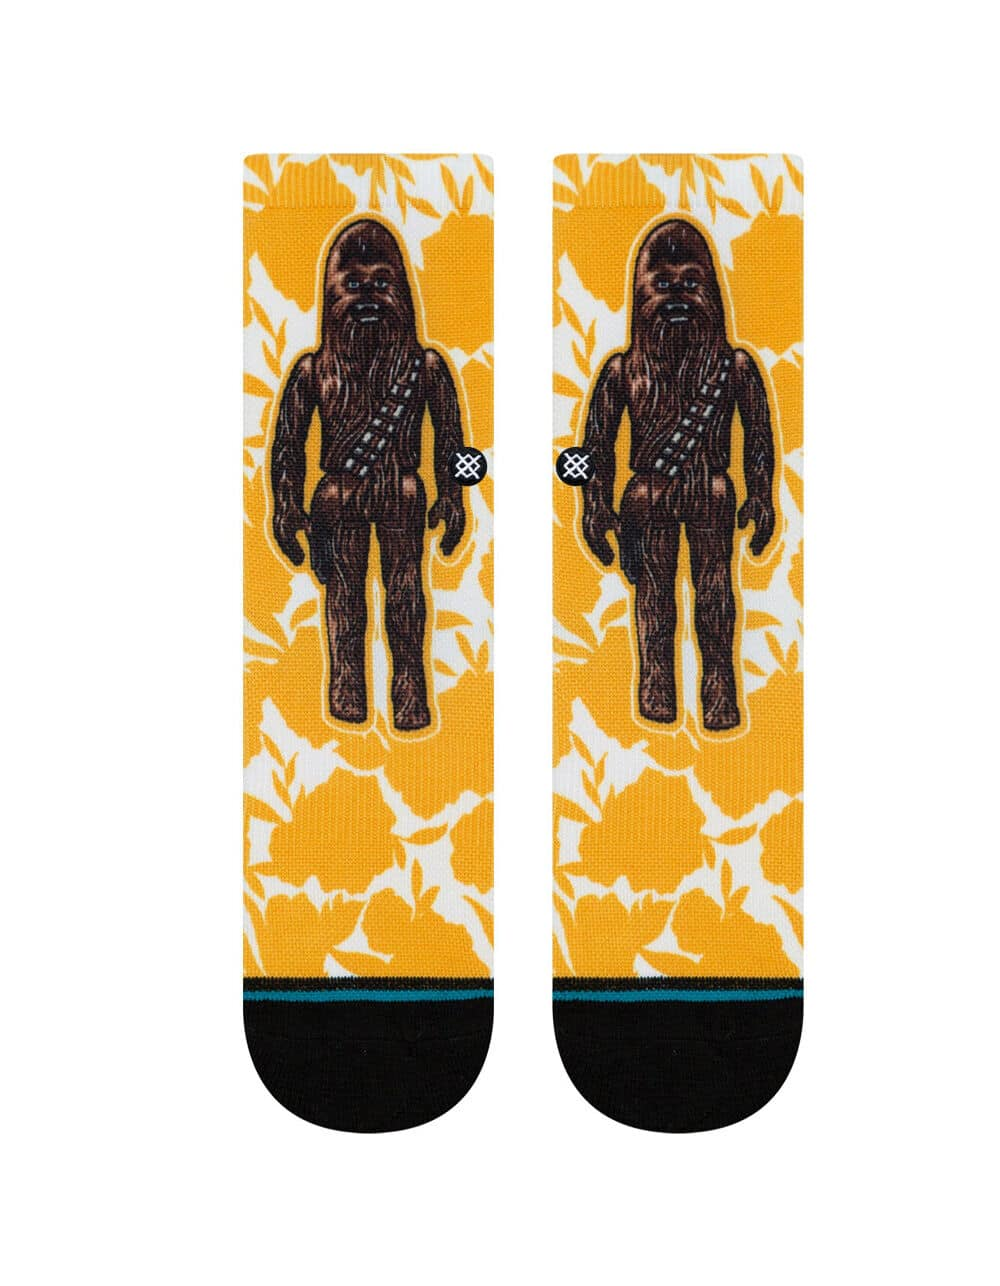 Stance Star Wars Floral Chewie / Chewbacca Kids Crew Socks (Large only) $4 + Free shipping